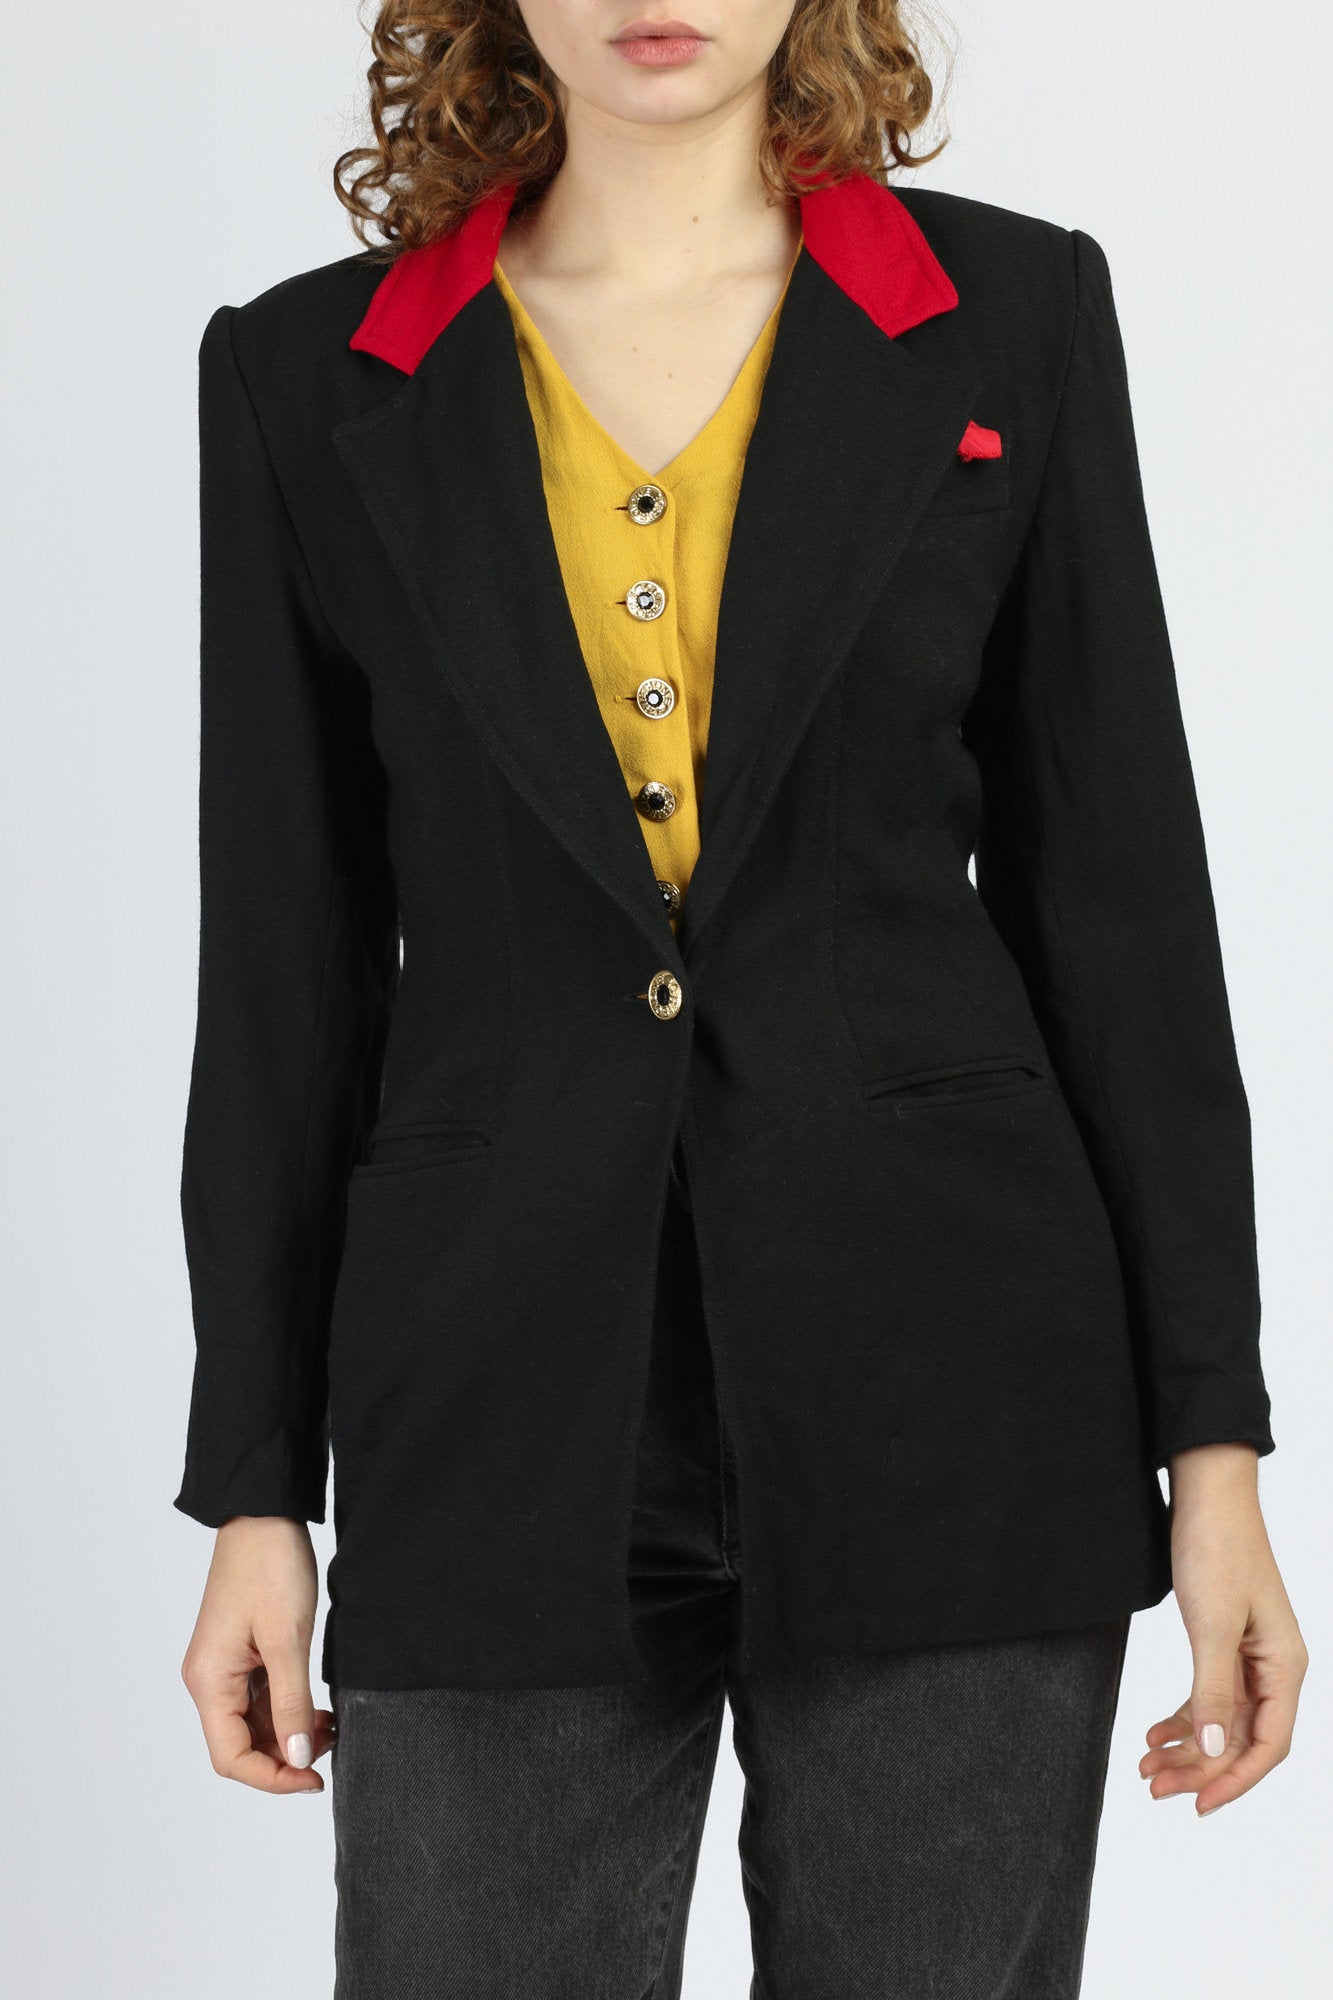 80s Criscione Blazer Jacket & Vest Combo Top - Small